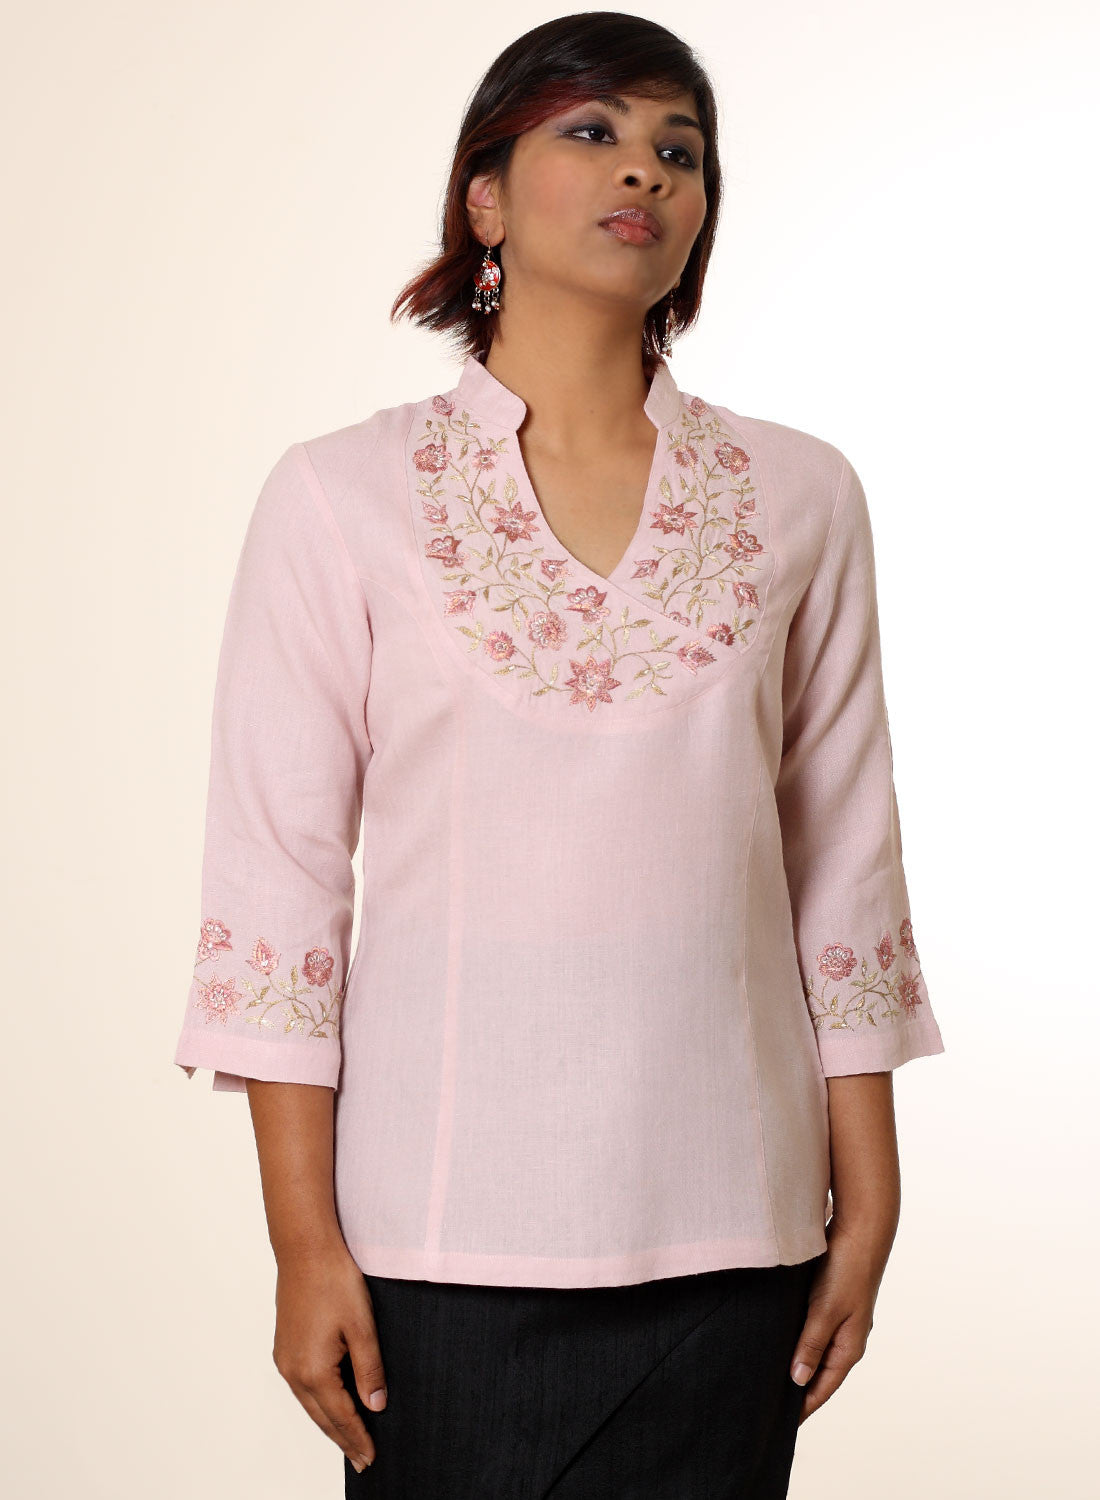 Asymmetric Embroidered Tunic - MINC ecofashion